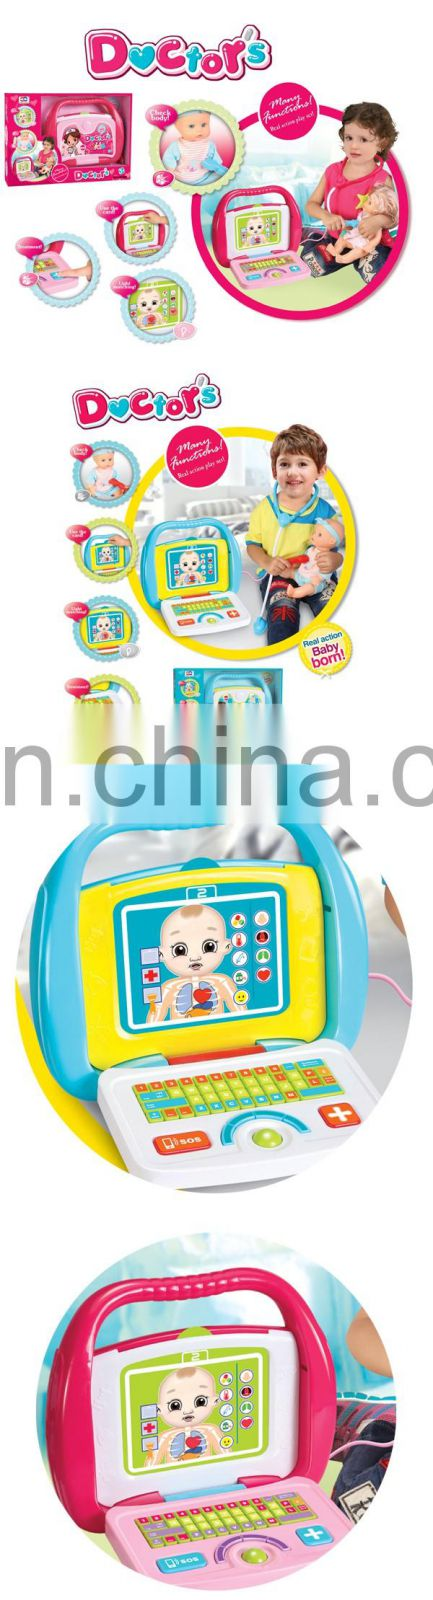 Doctor toy set with light and music for girls and boys